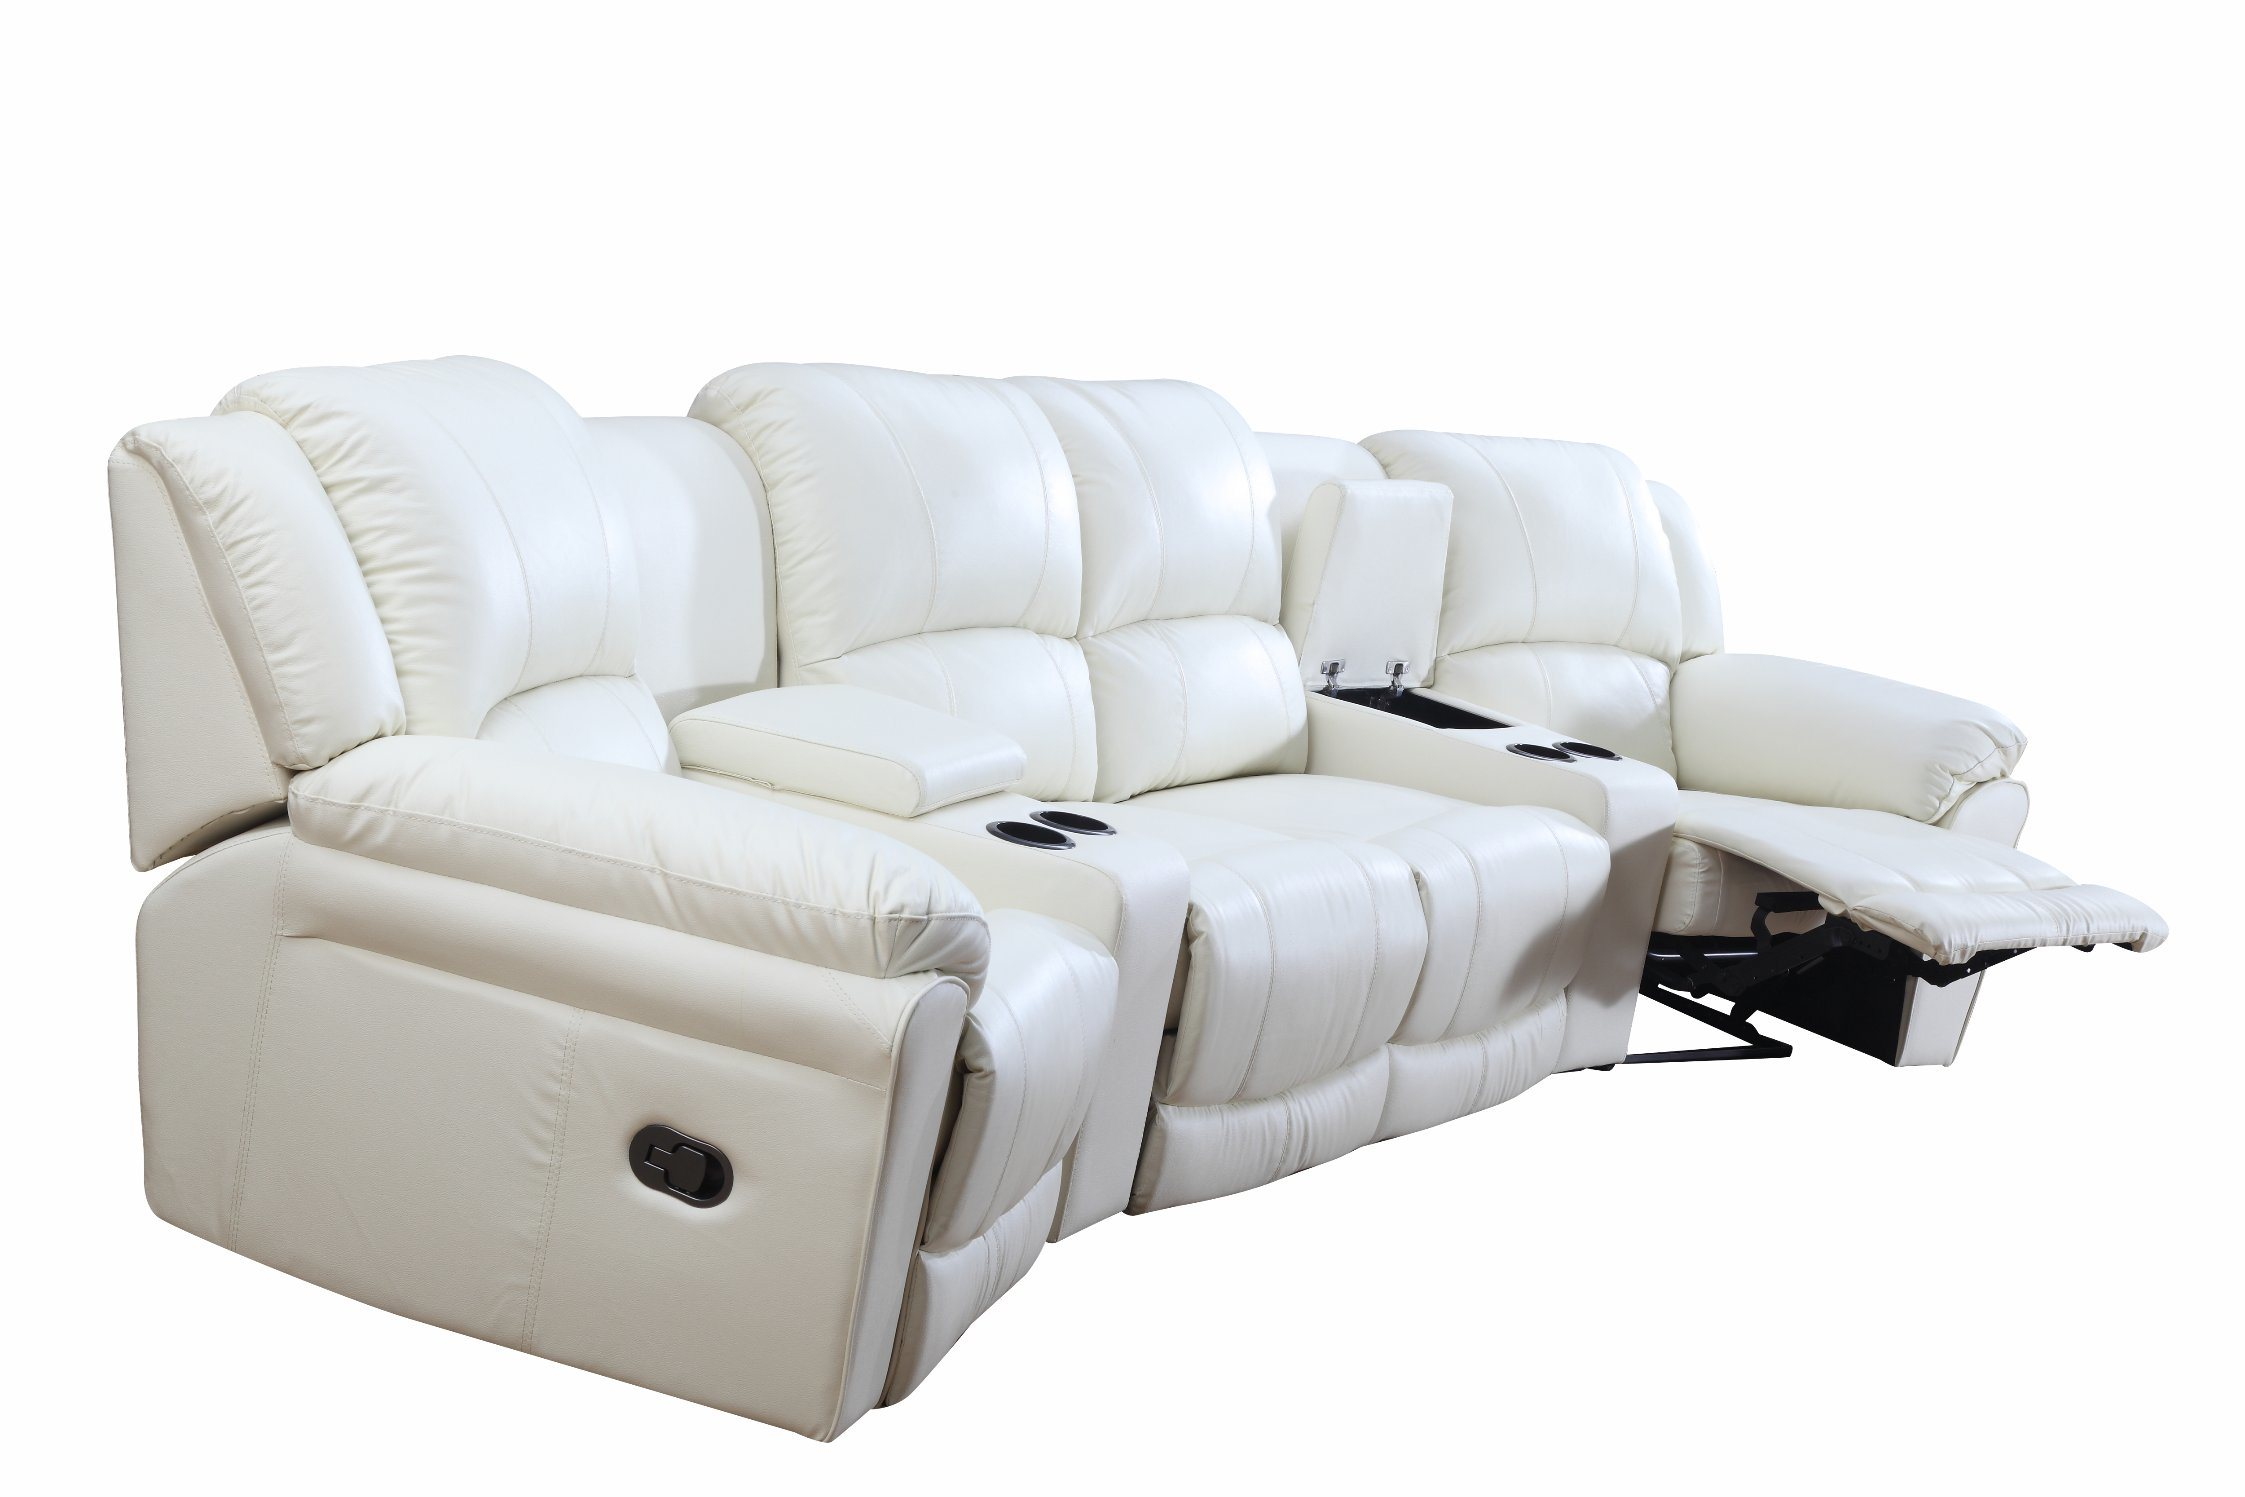 Home Cinema Leather Sofa for Modern Sofa with Recliner Sofa